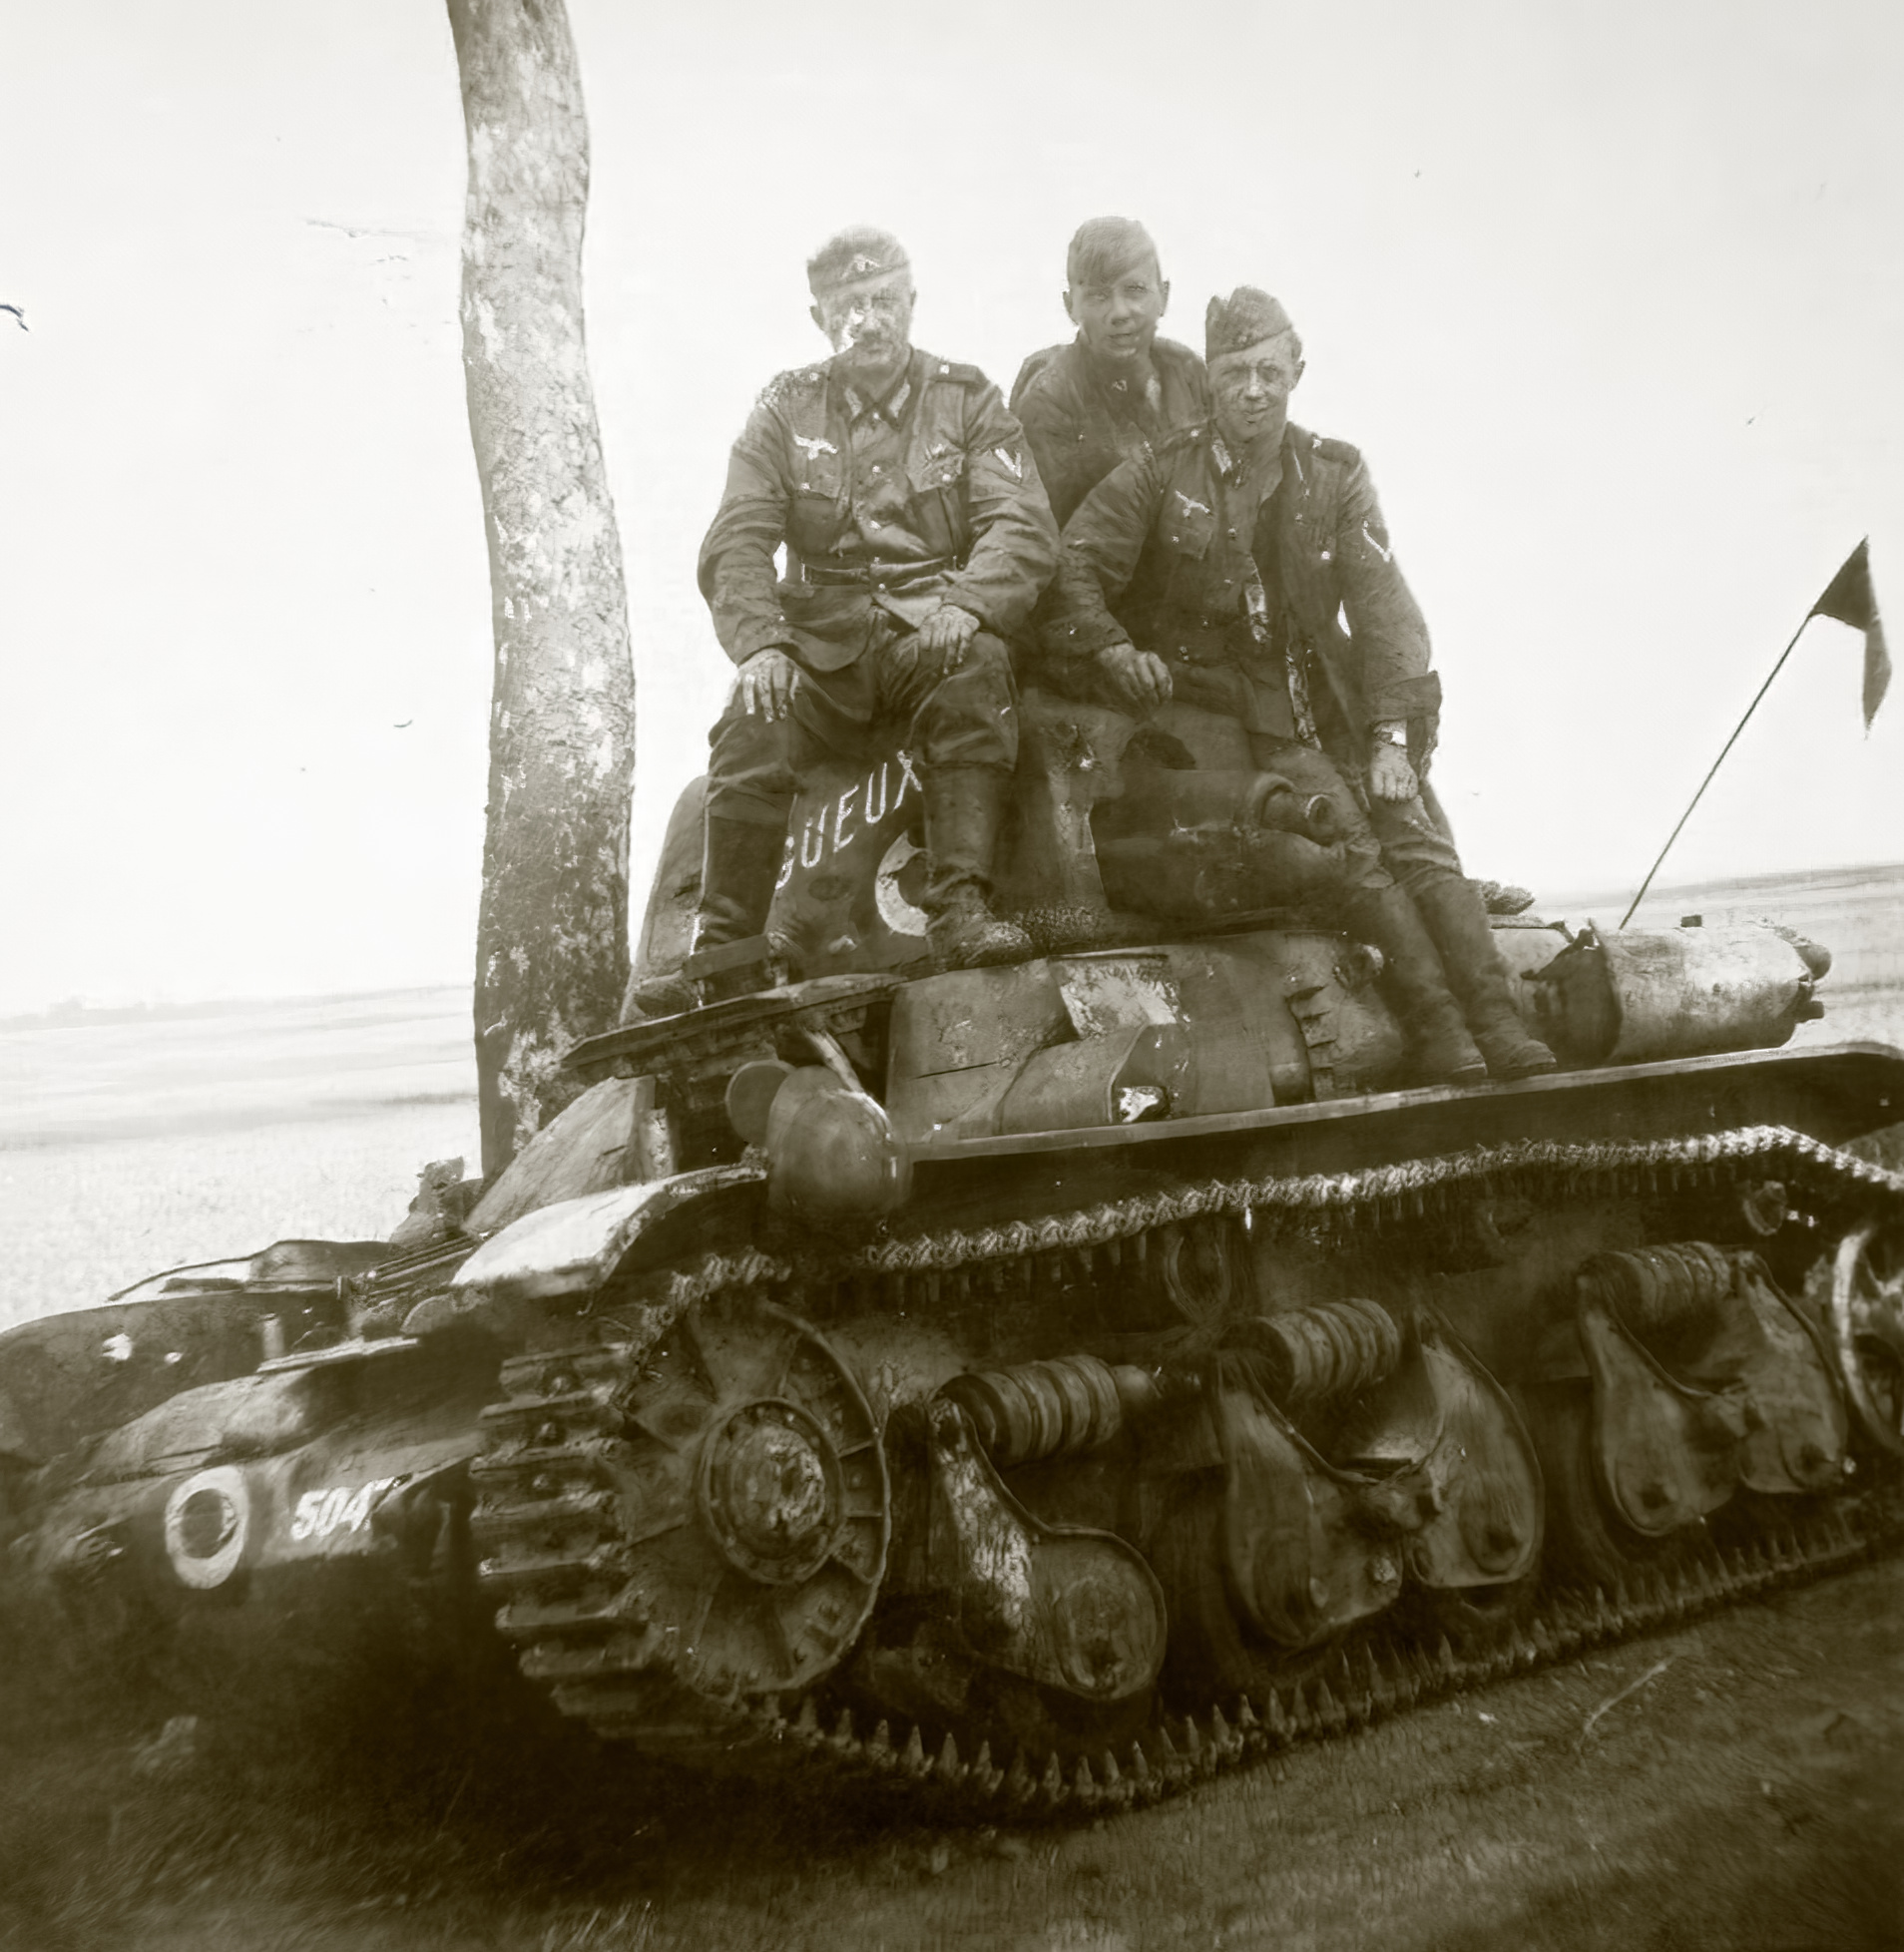 French Army Renault R35 support tank named Gueux captureded France 1940 ebay 01